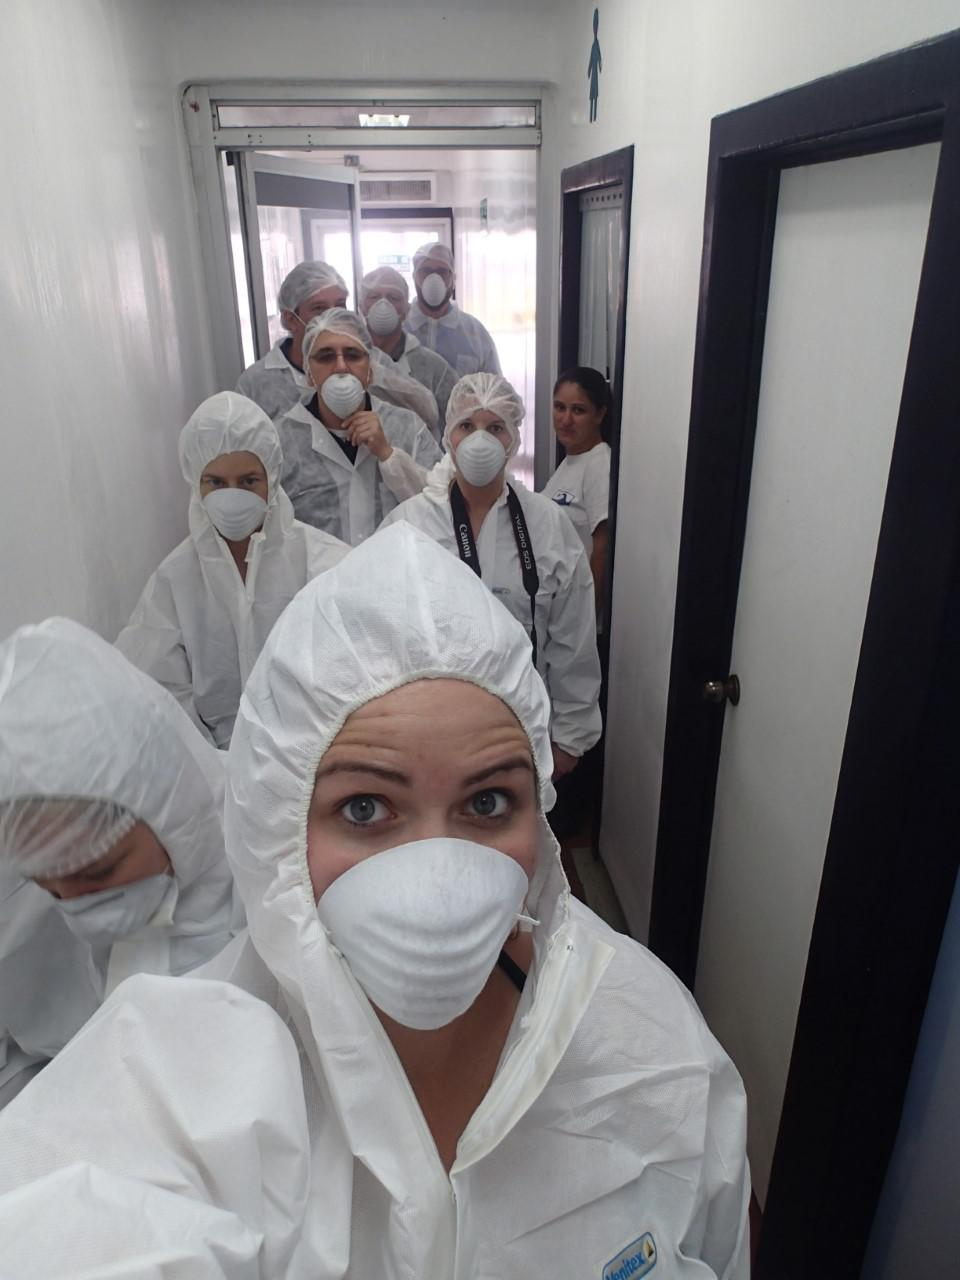 Woman in PPE and lab coat takes a selfie looking into the camera with 8 similarly-dressed individuals behind her in a hallway.